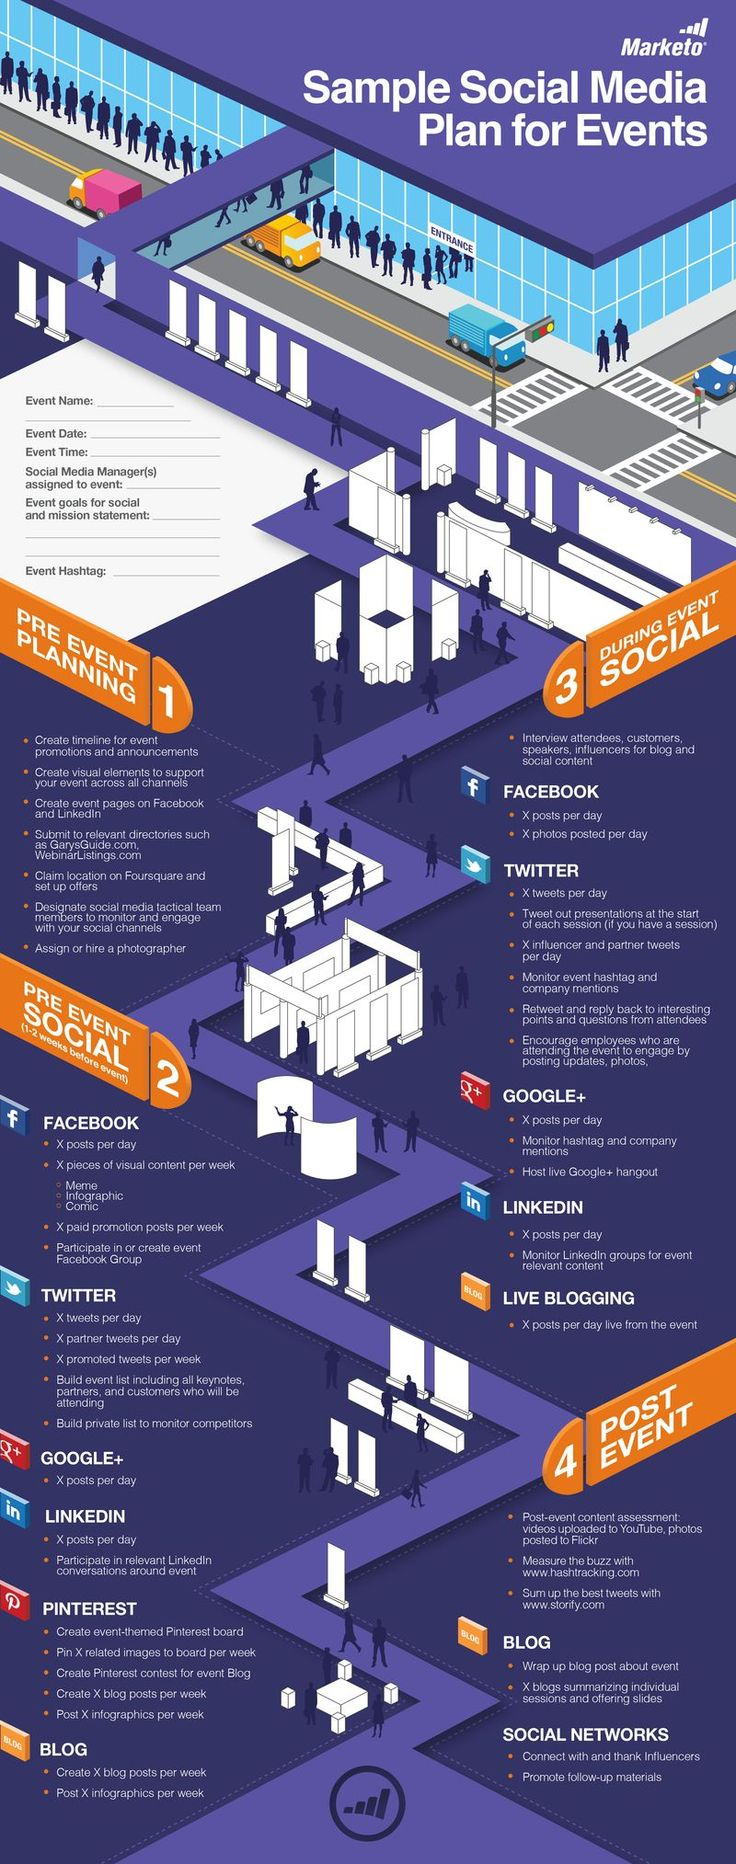 How Do You Use Social Media For Event Planning Before, During And After? #infographic